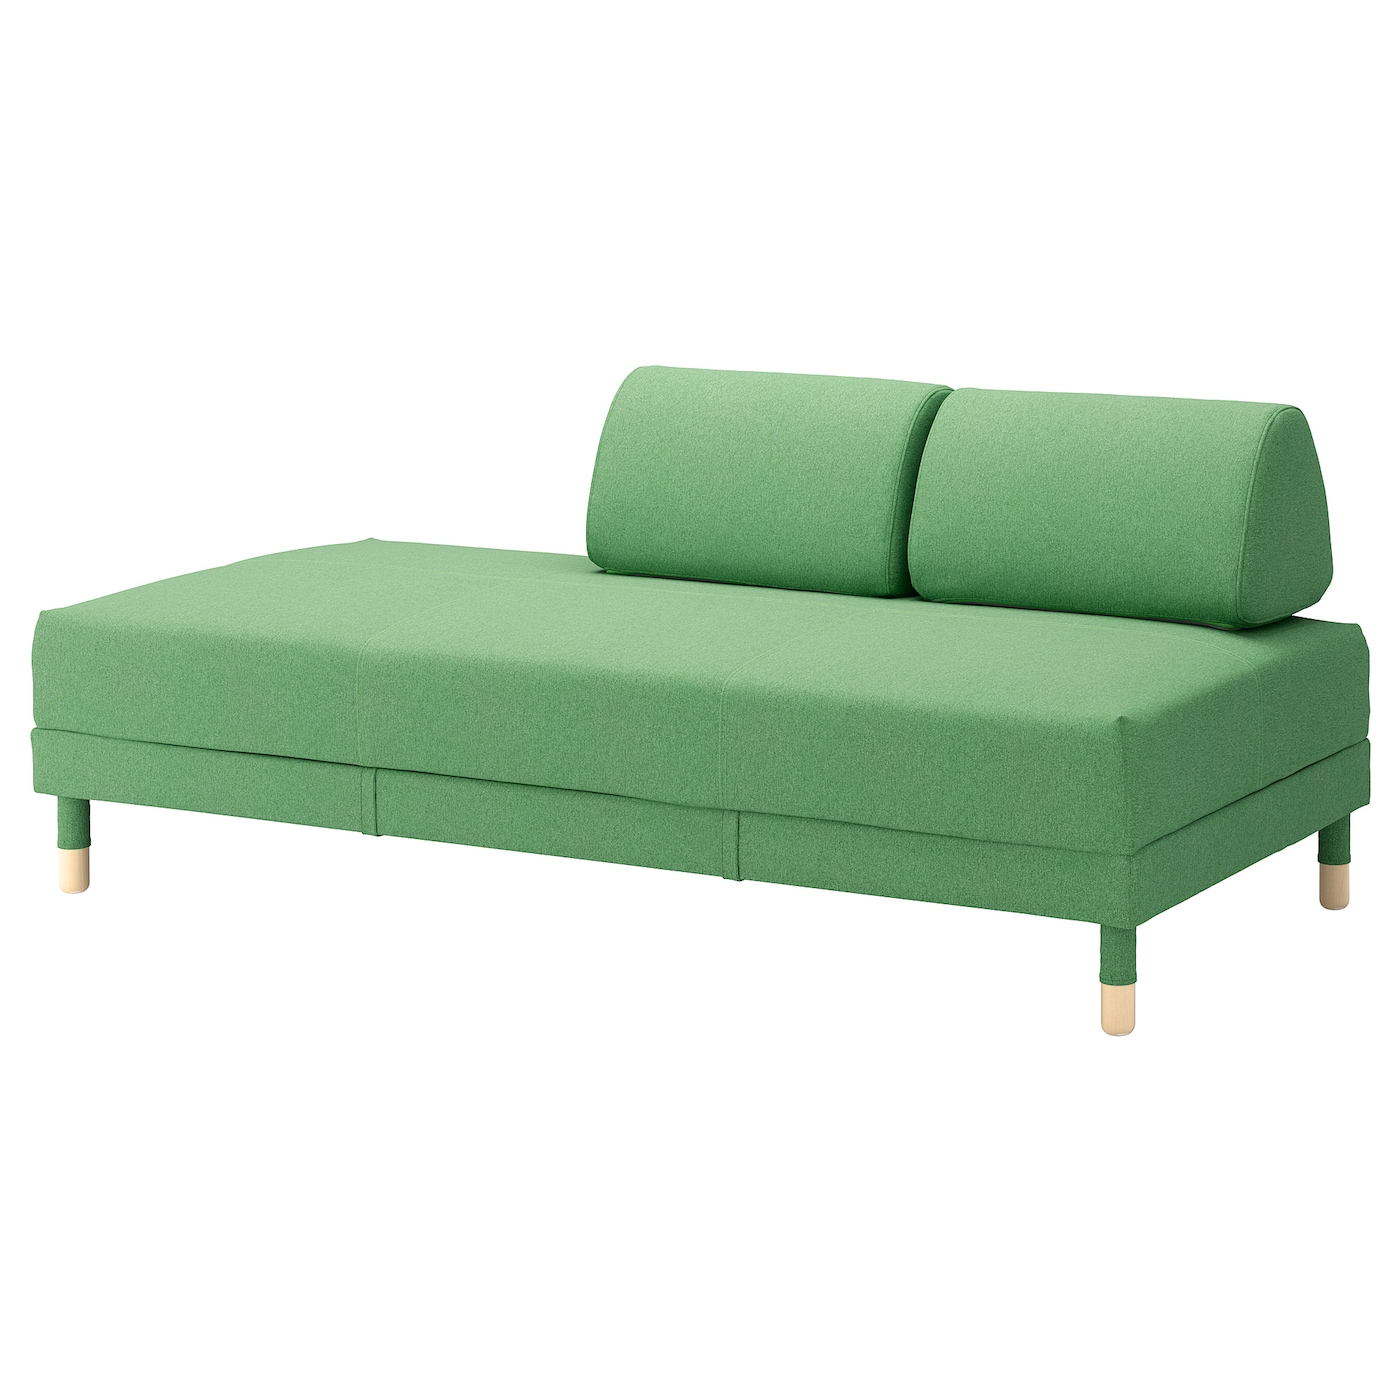 flottebo sofa bed lysed green 90 cm ikea For90 Cm Sofa Bed